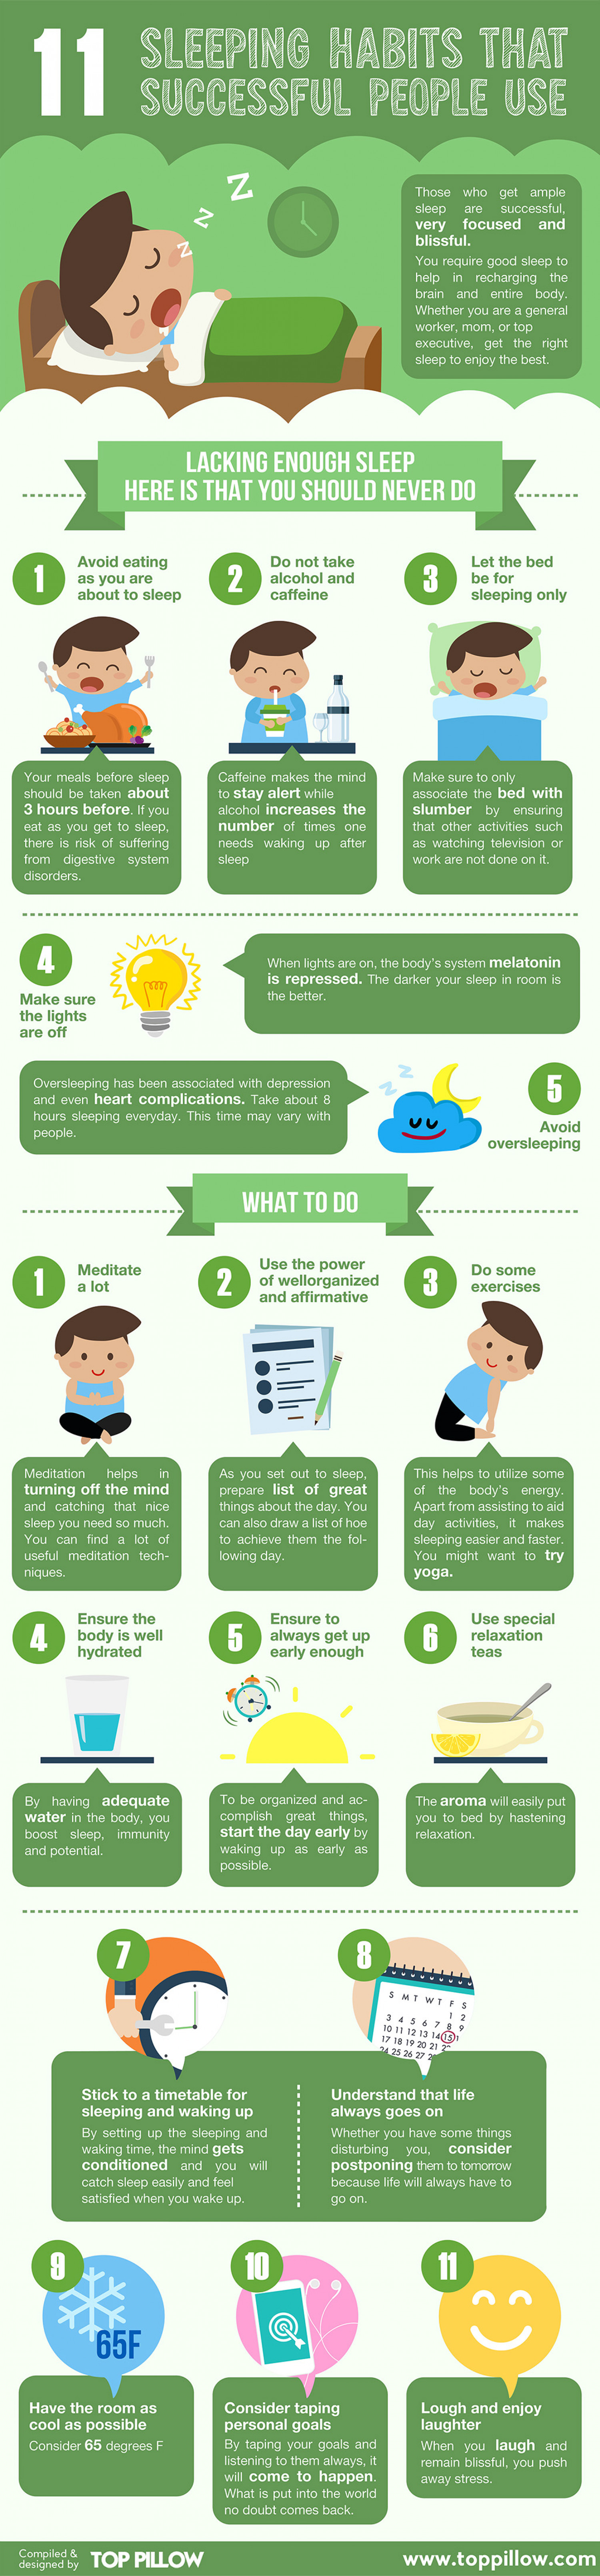 11 Sleeping Habits That Successful People Use Infographic